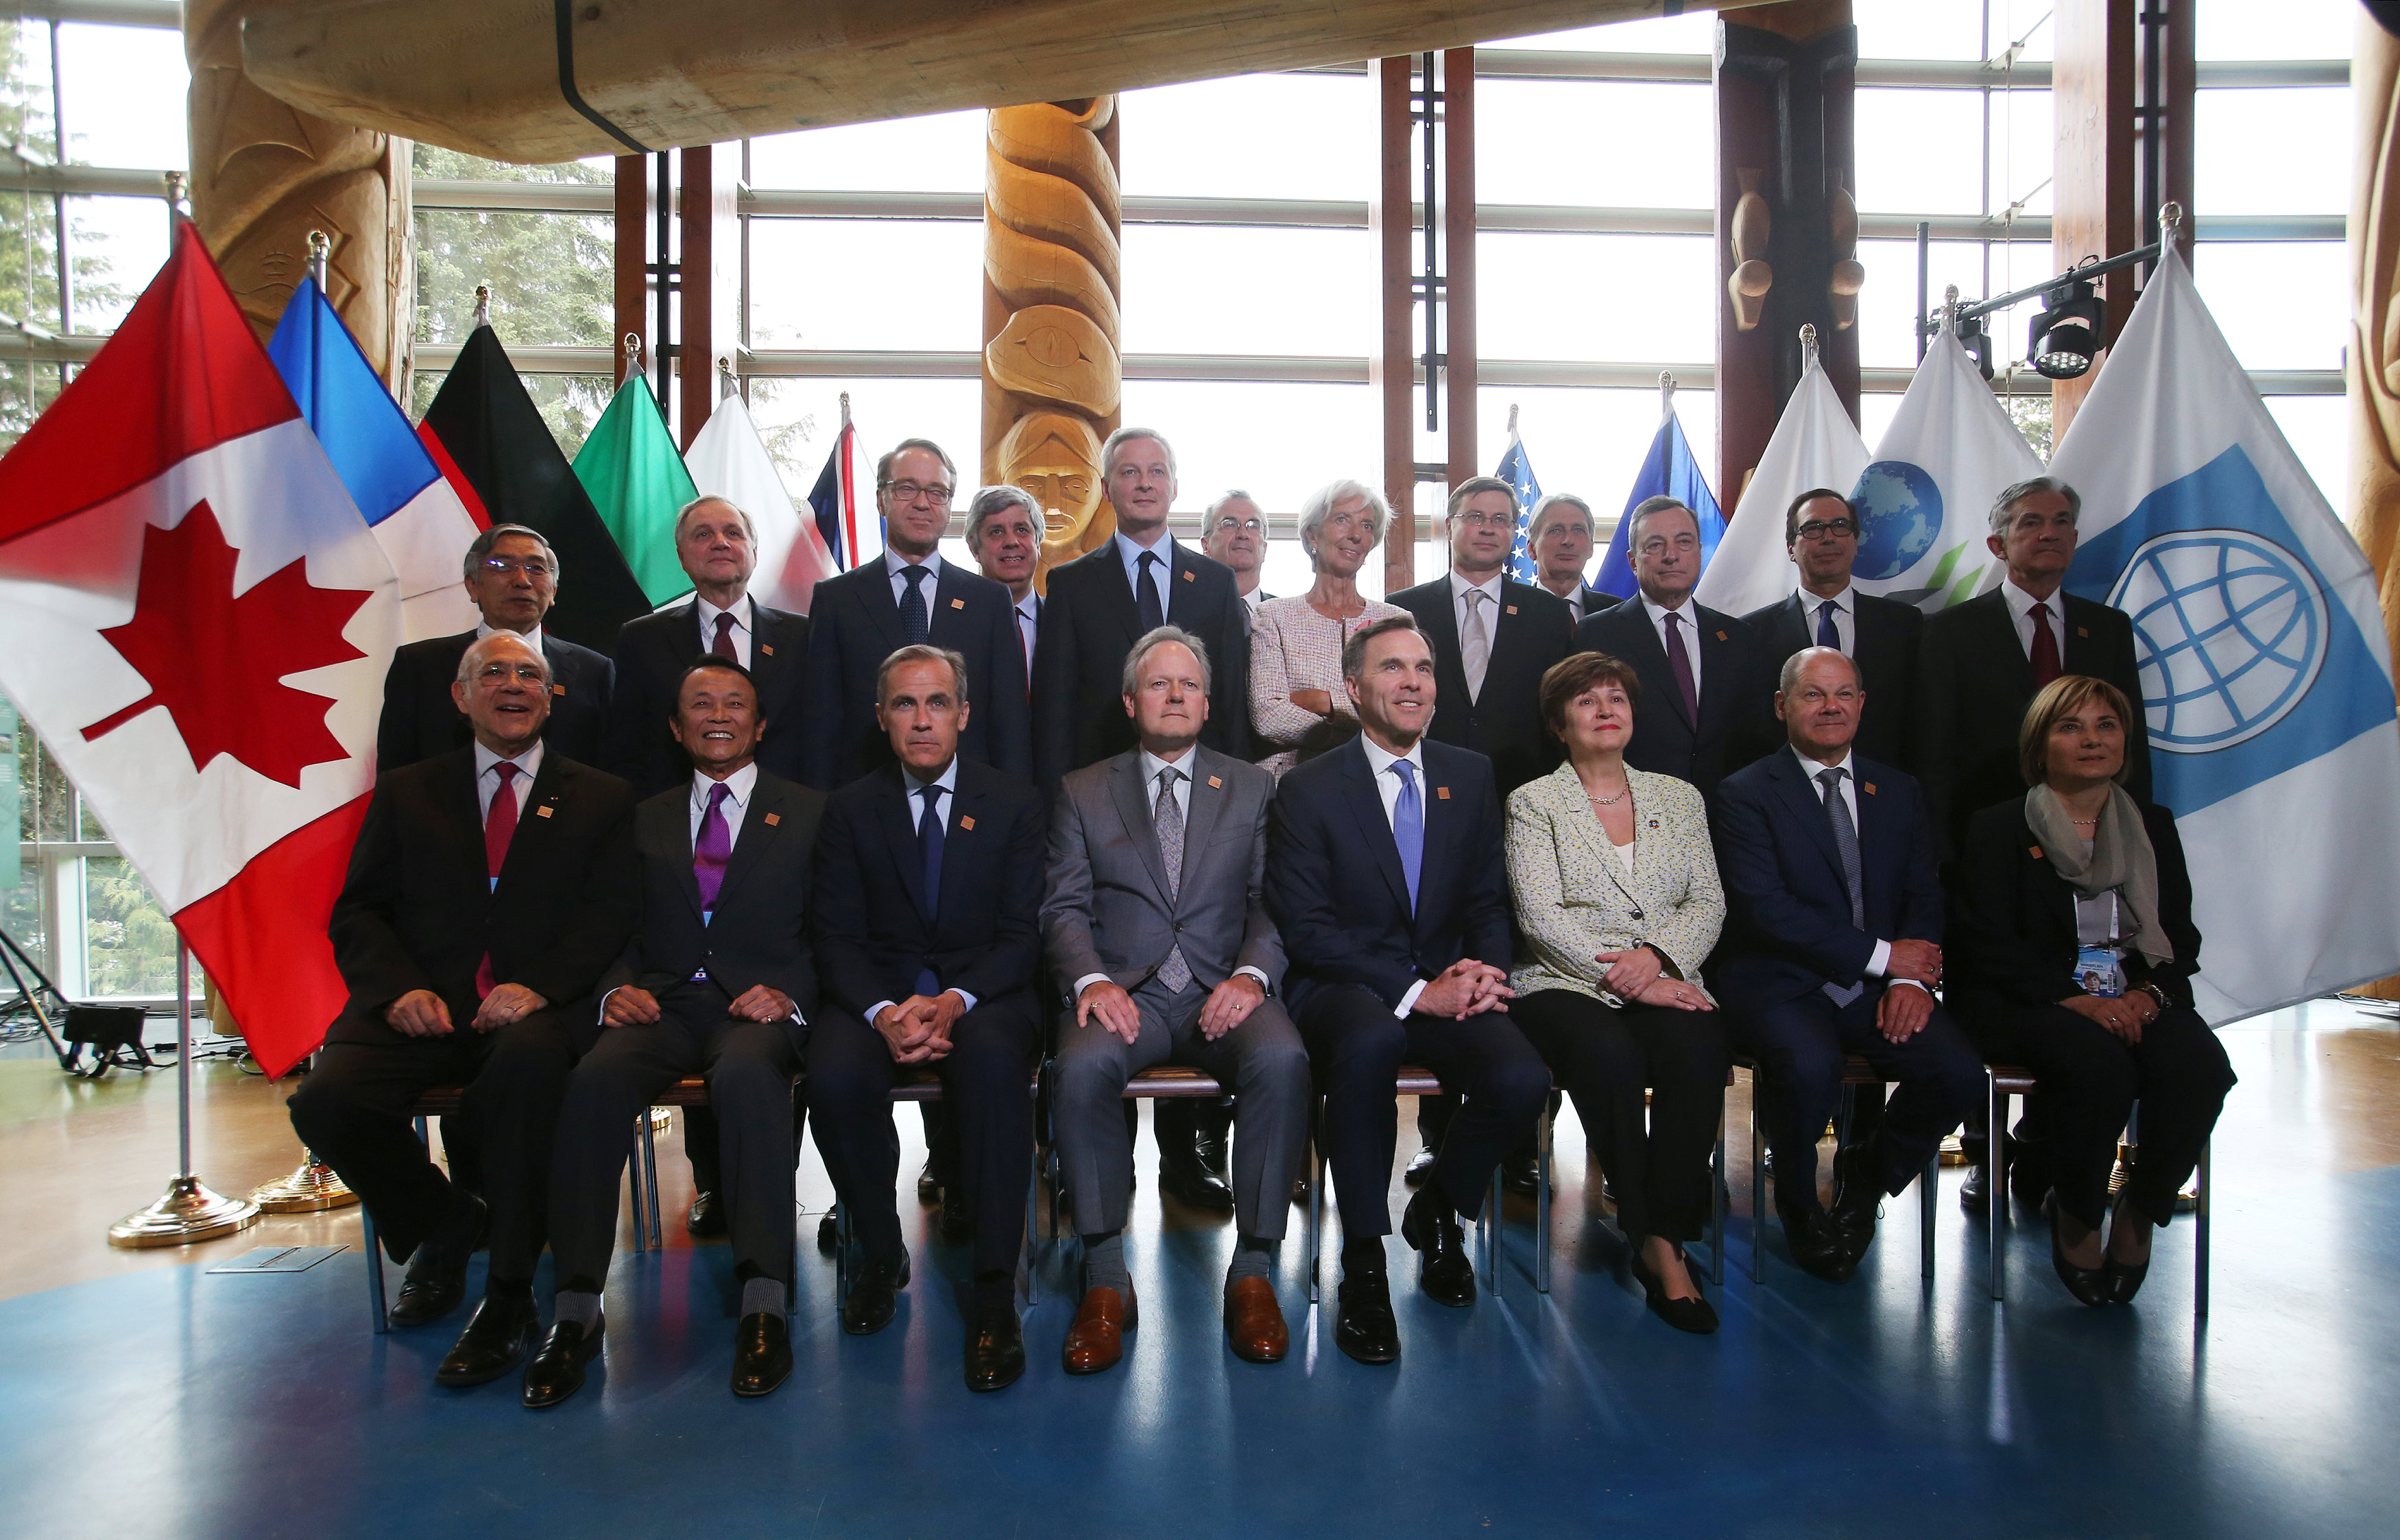 Delegates pose for an official photo at the G7 Finance Ministers Summit in Whistler,